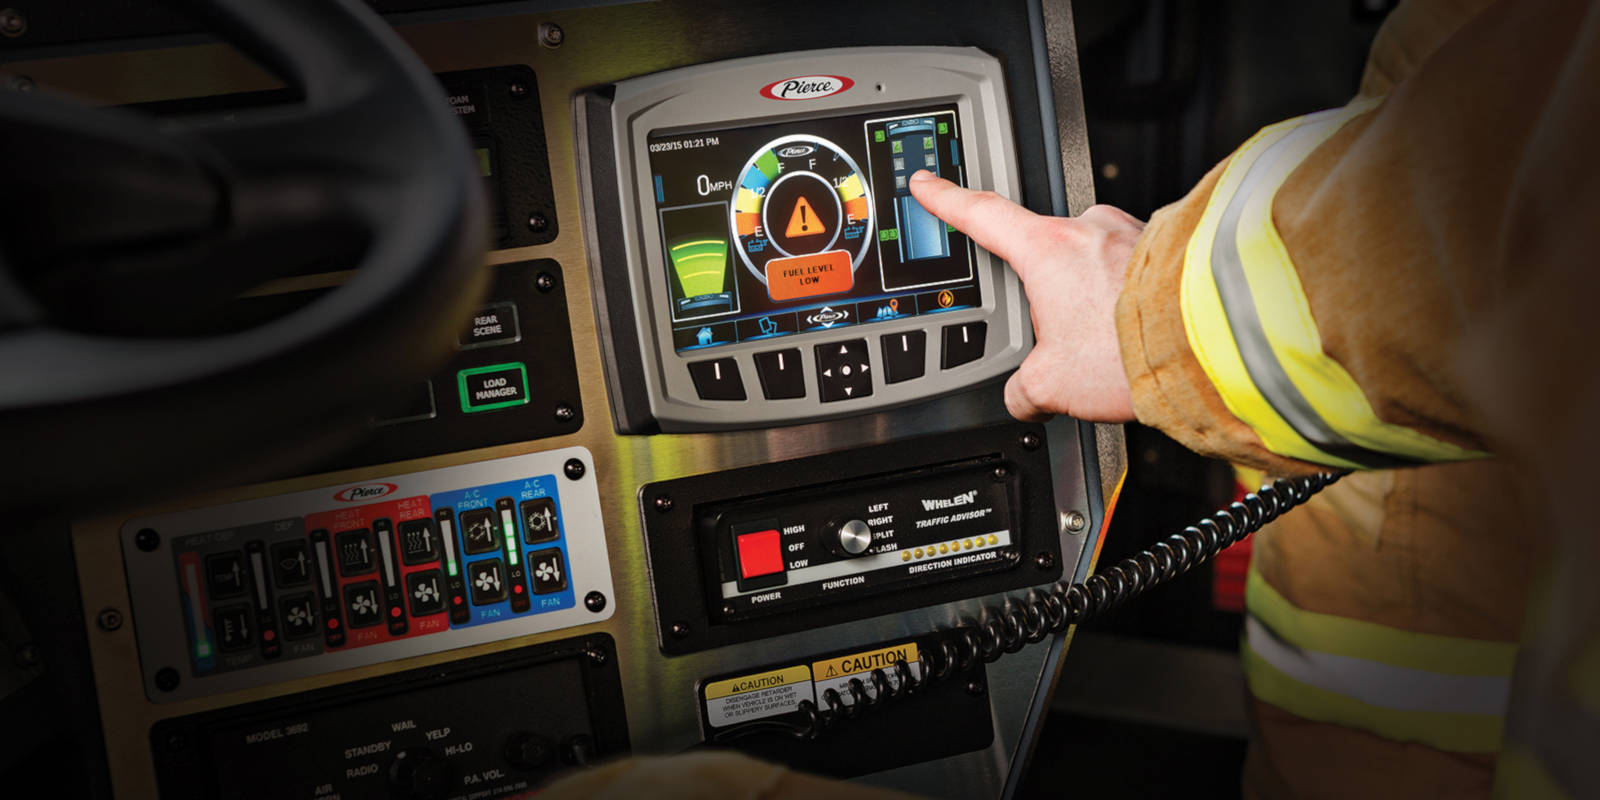 Command Zone 3 touch interface